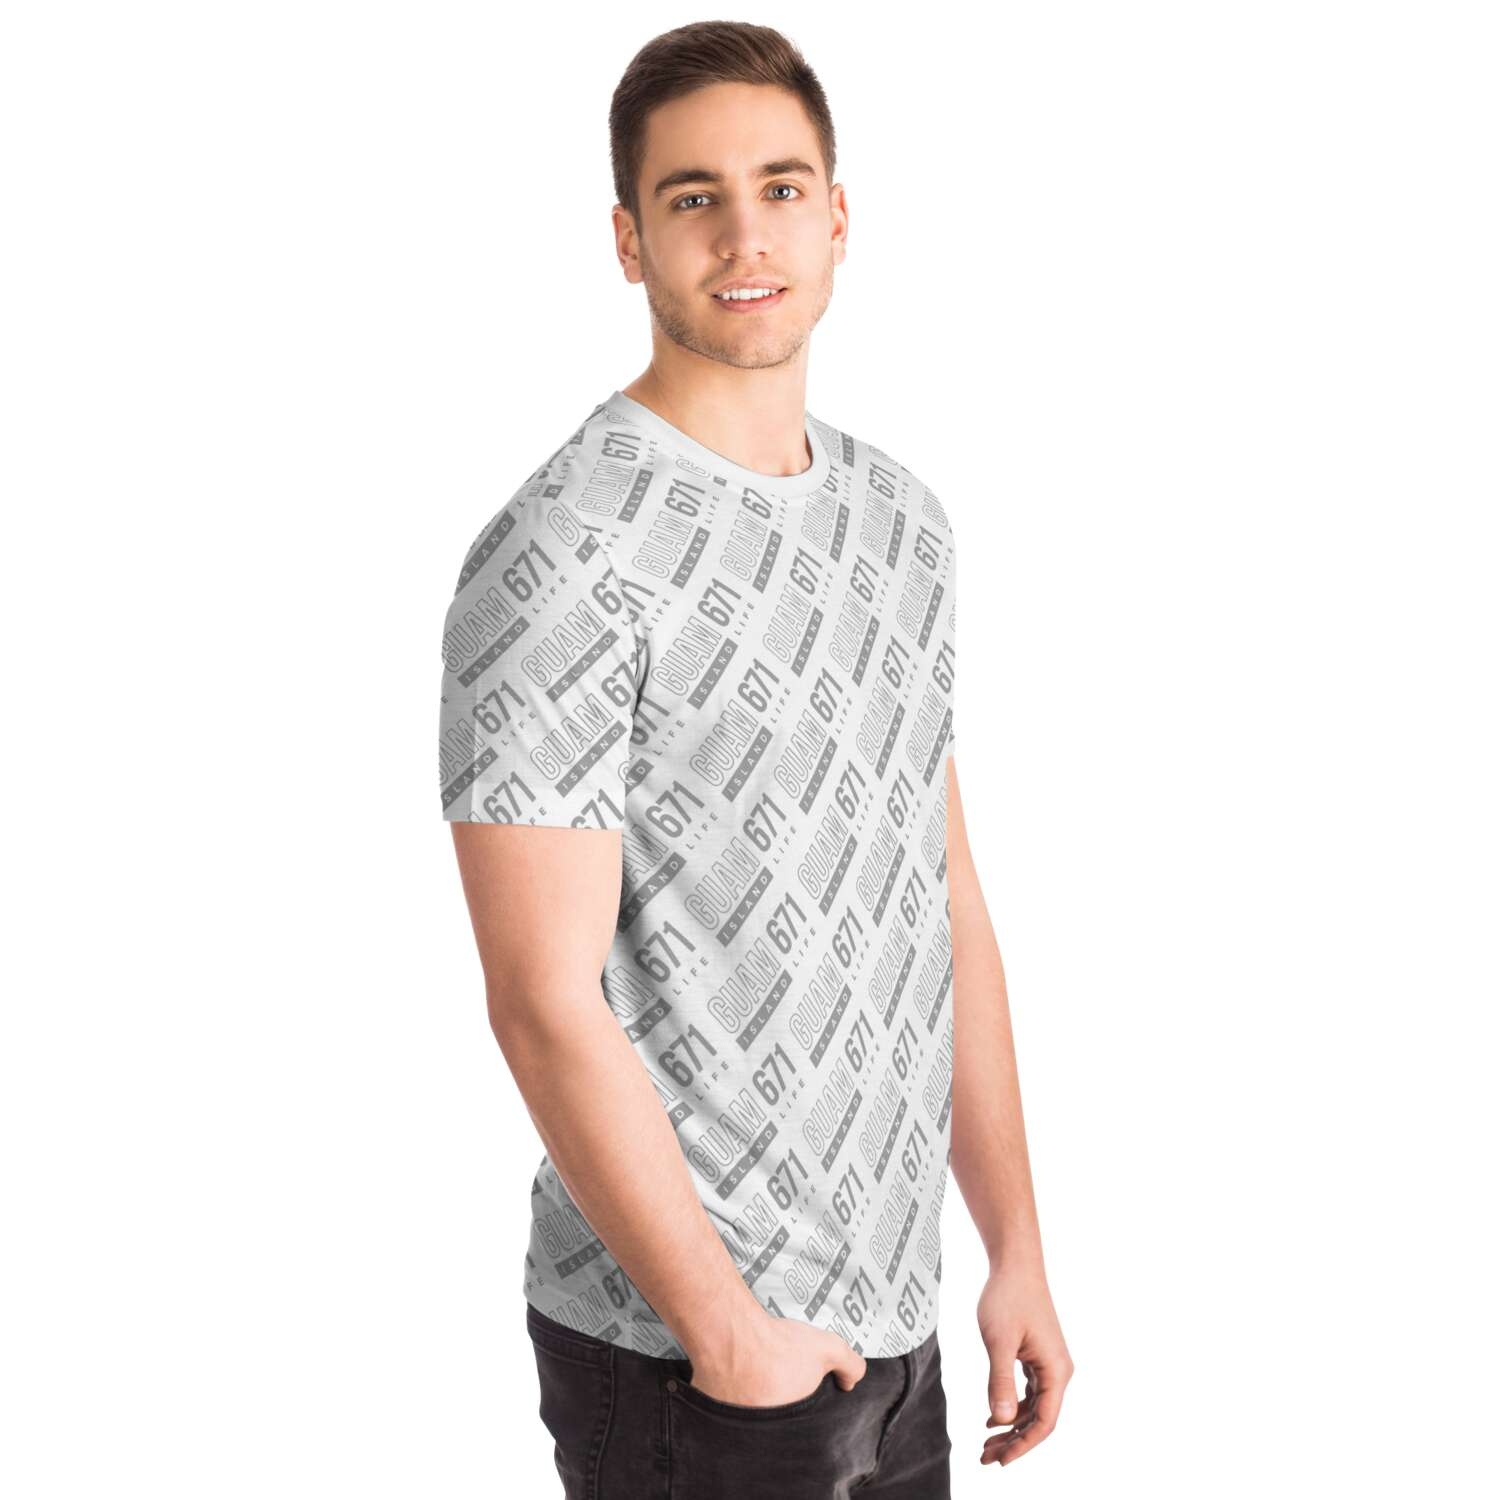 Guam 671 All Over Print Unisex T-Shirt